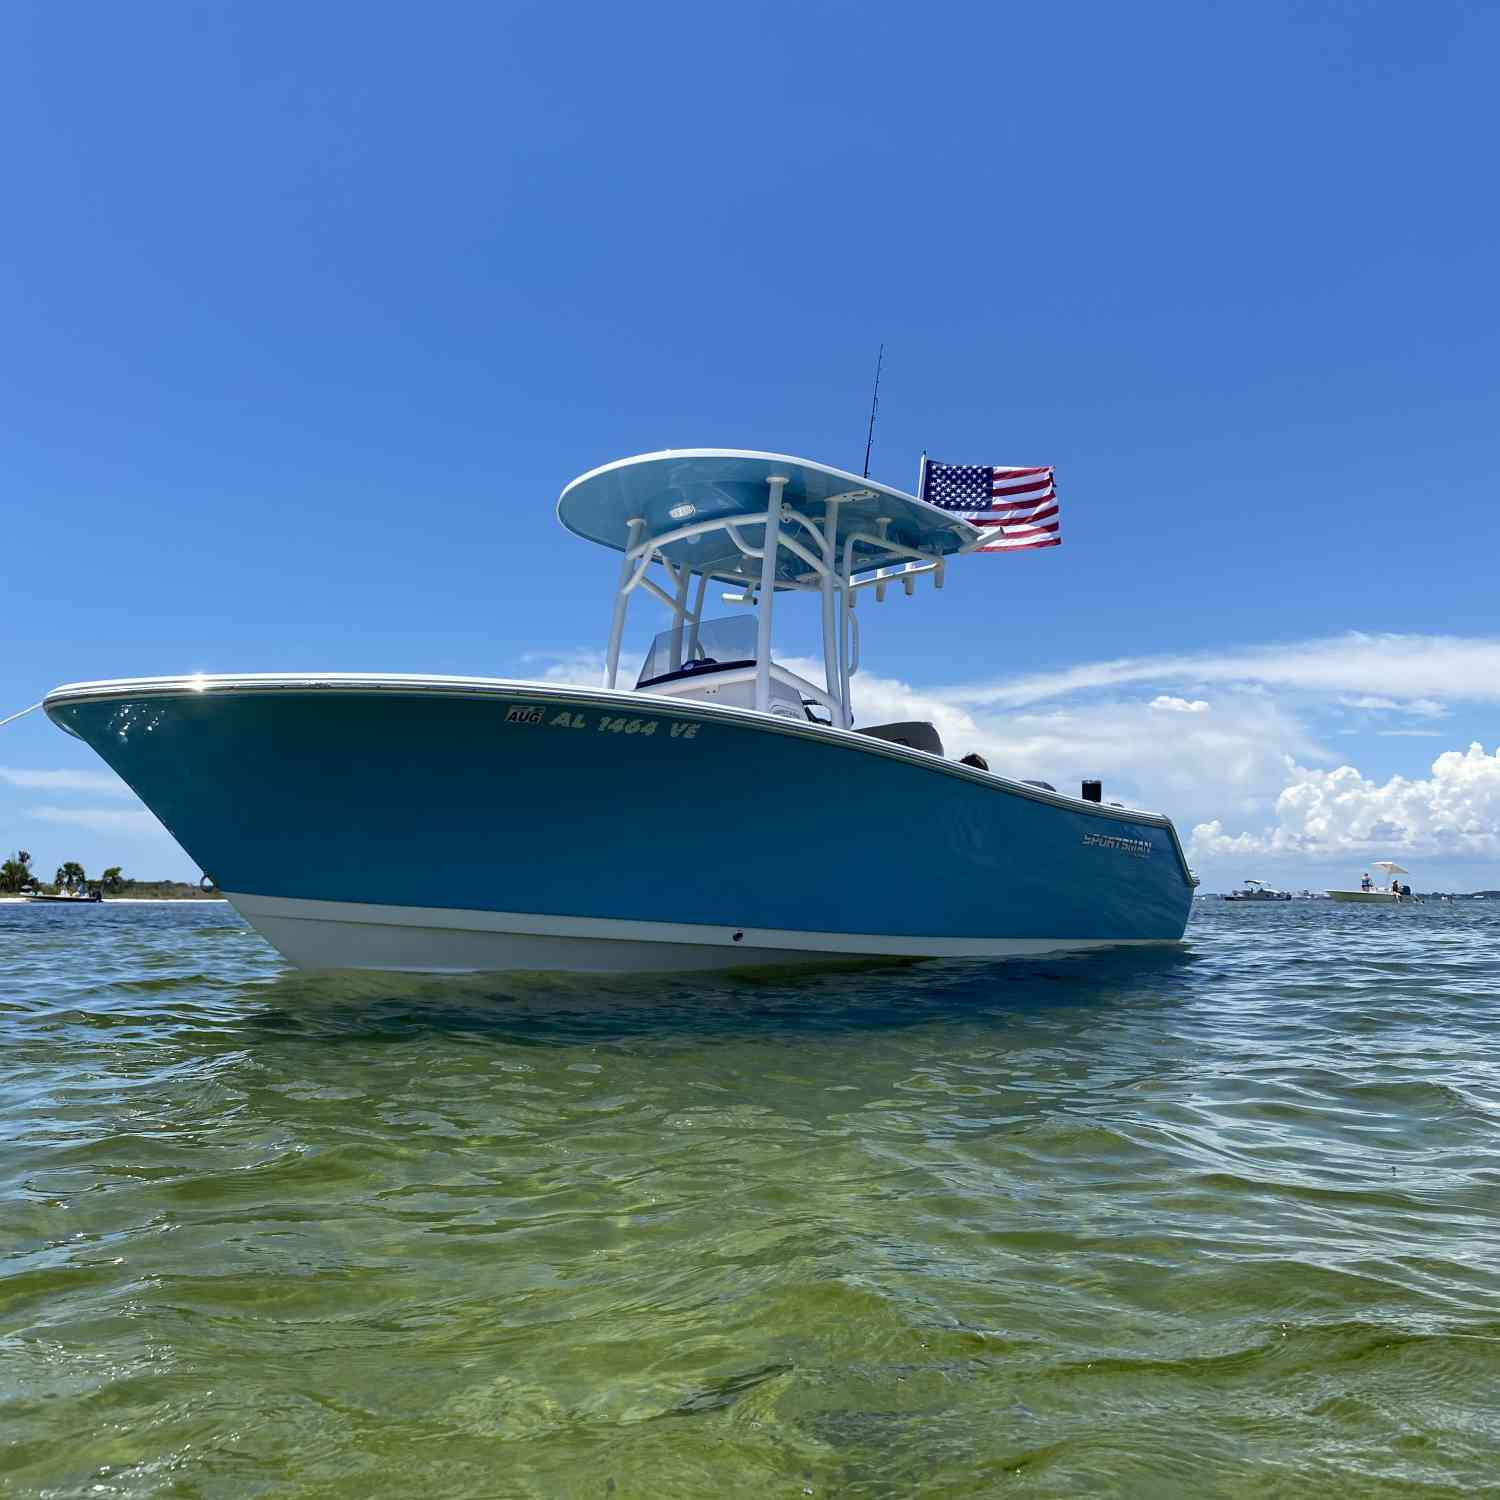 Title: Feeling Salty - On board their Sportsman Heritage 211 Center Console - Location: Panama City Beach. Participating in the Photo Contest #SportsmanSeptember2020